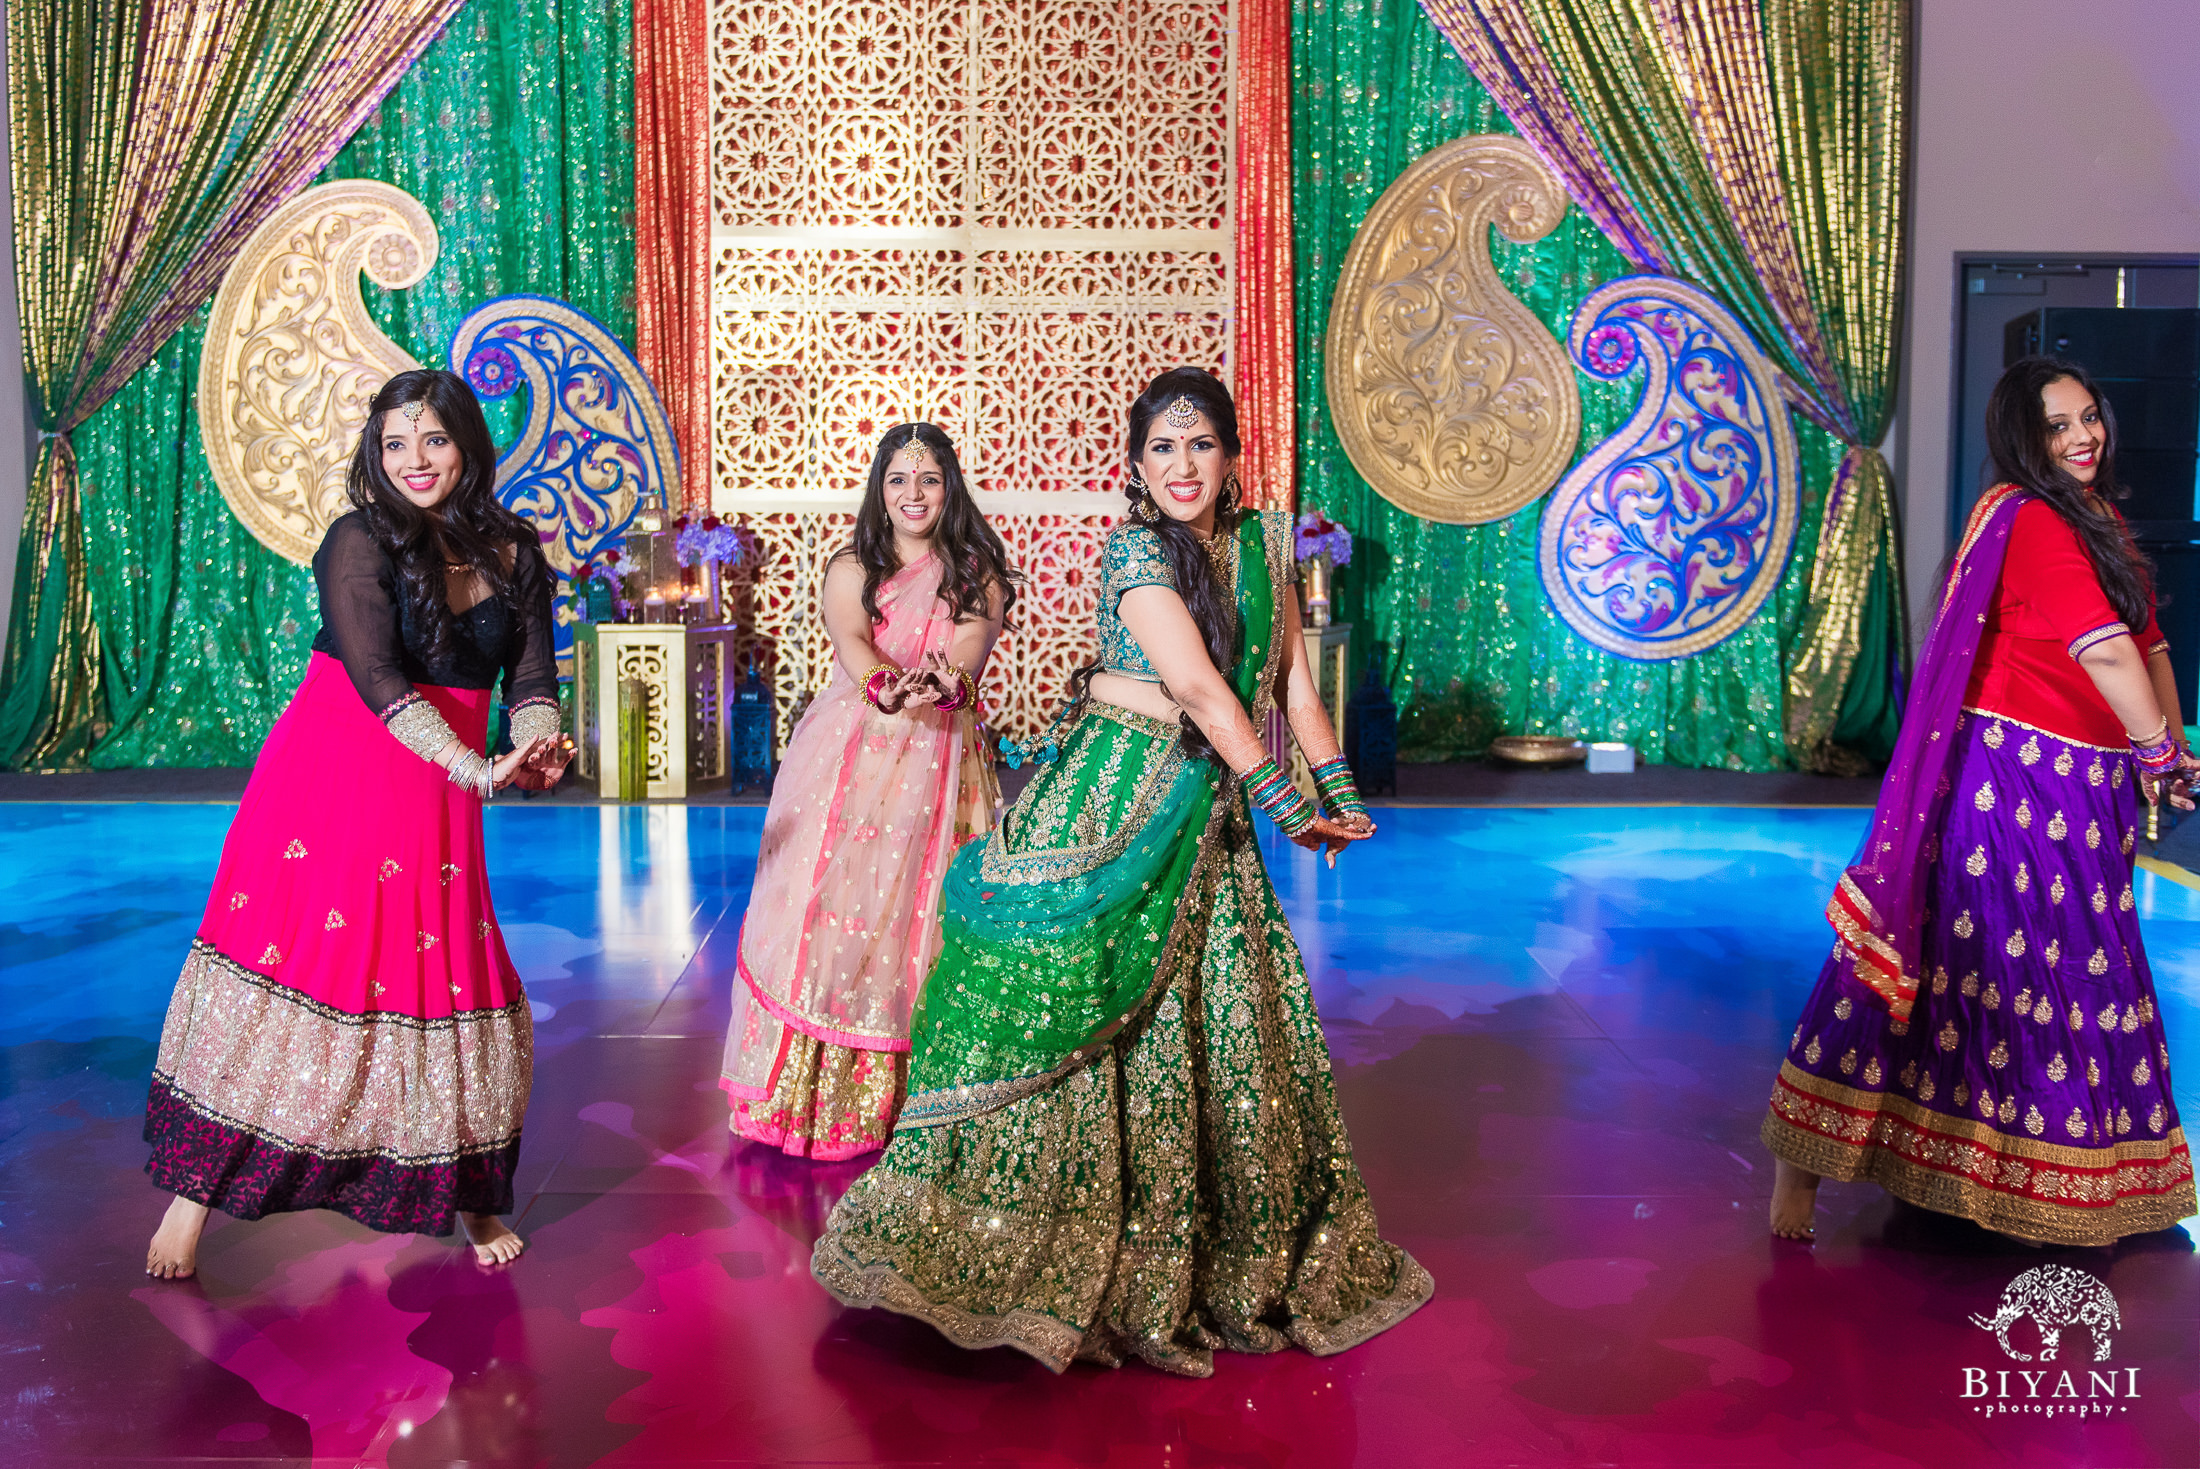 Punjabi bride and bridesmaids